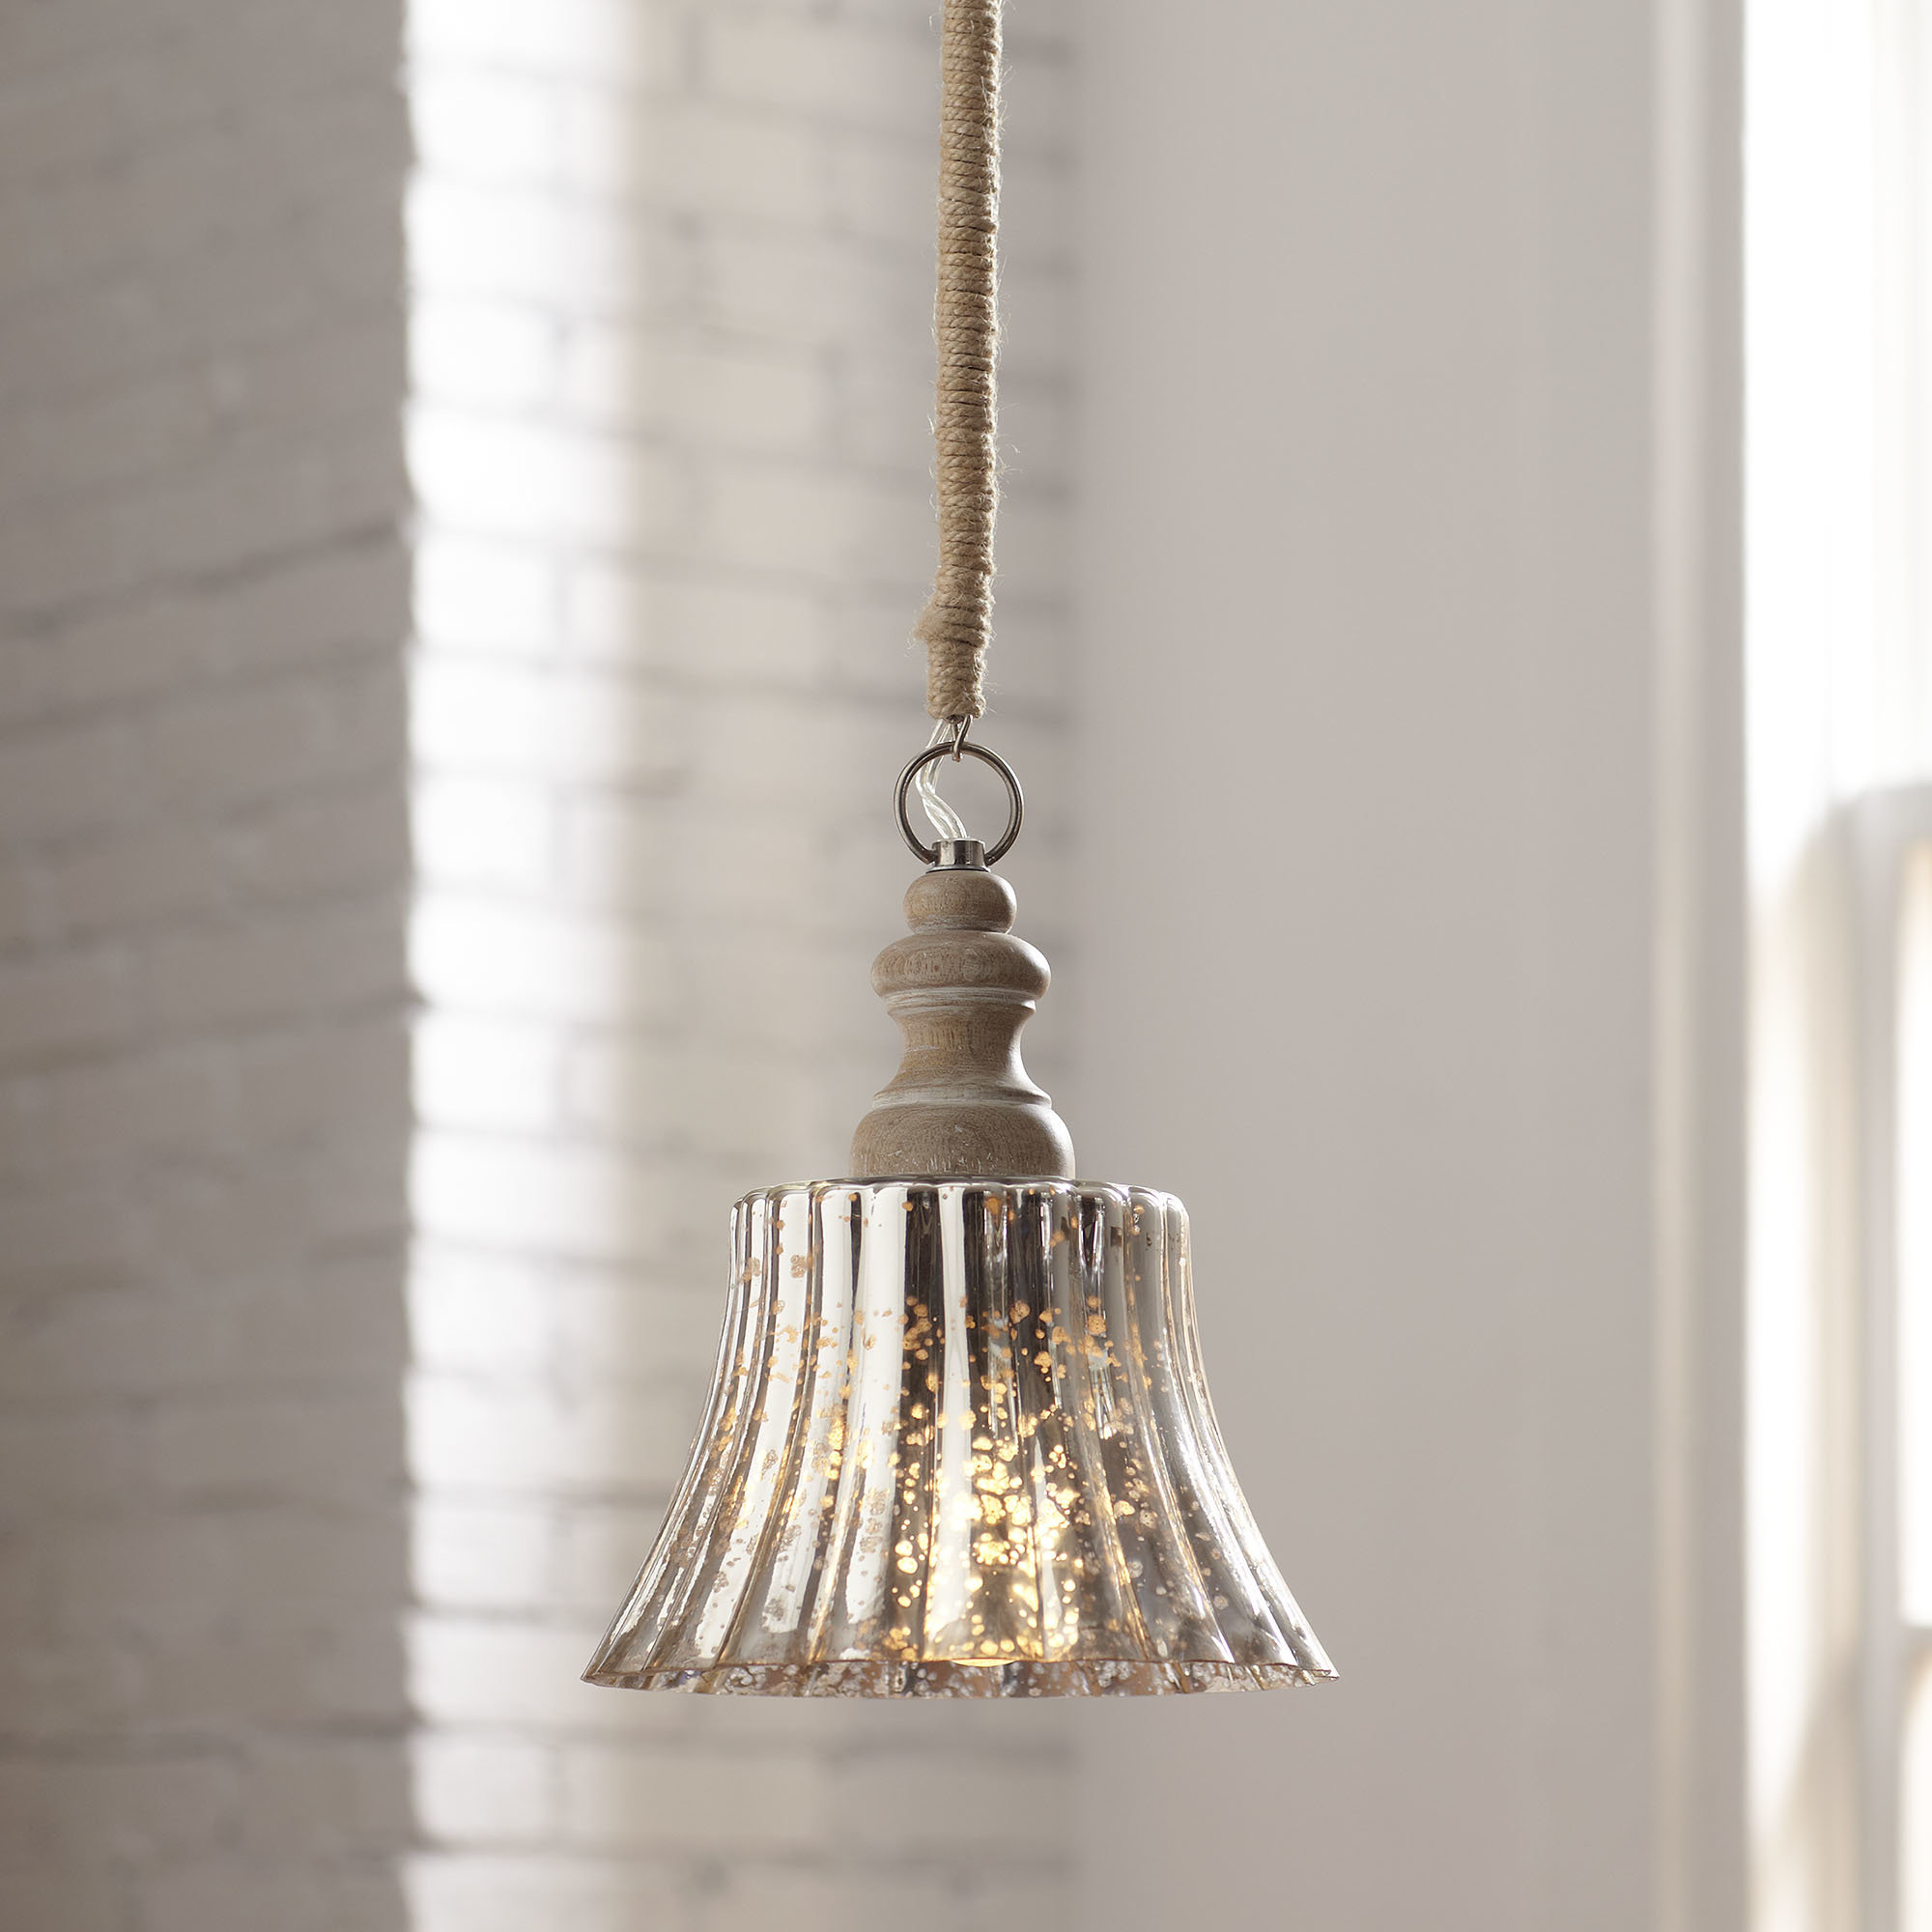 Klas 1 Light Bell Pendant With Most Up To Date Scruggs 1 Light Geometric Pendants (Gallery 17 of 25)